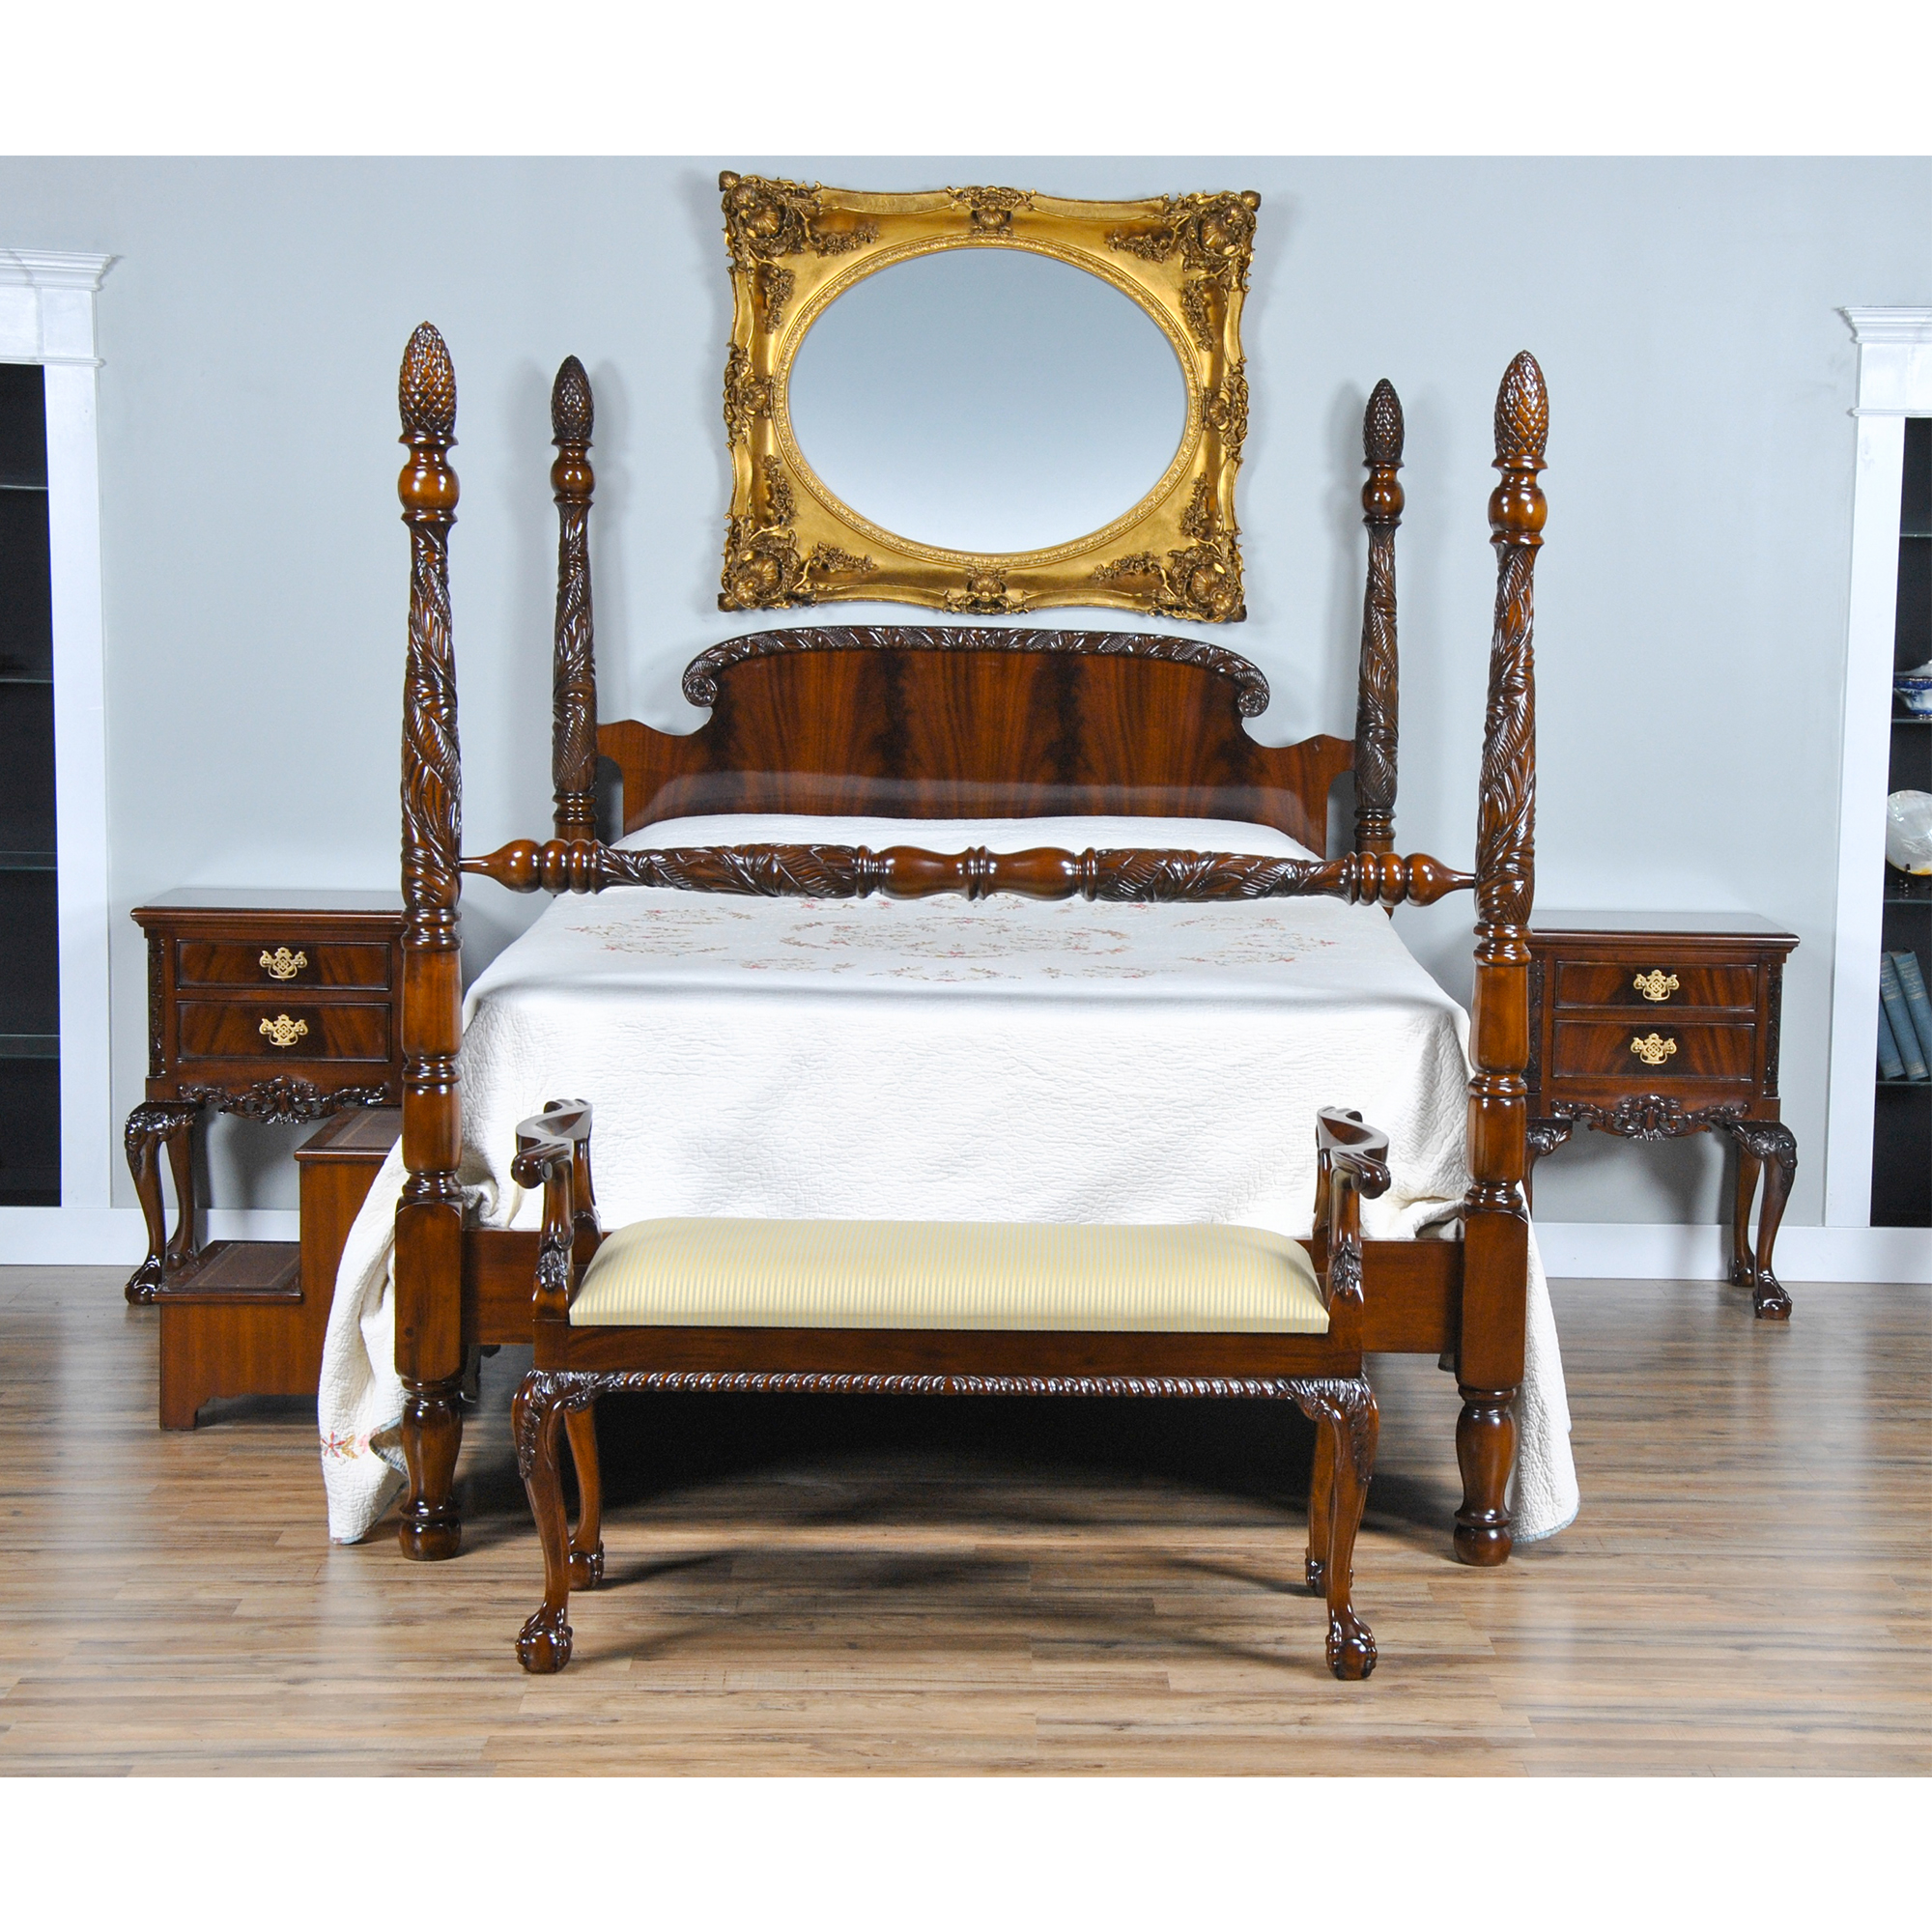 Mahogany Queen Size Poster Bed, Niagara Furniture, Poster Bed